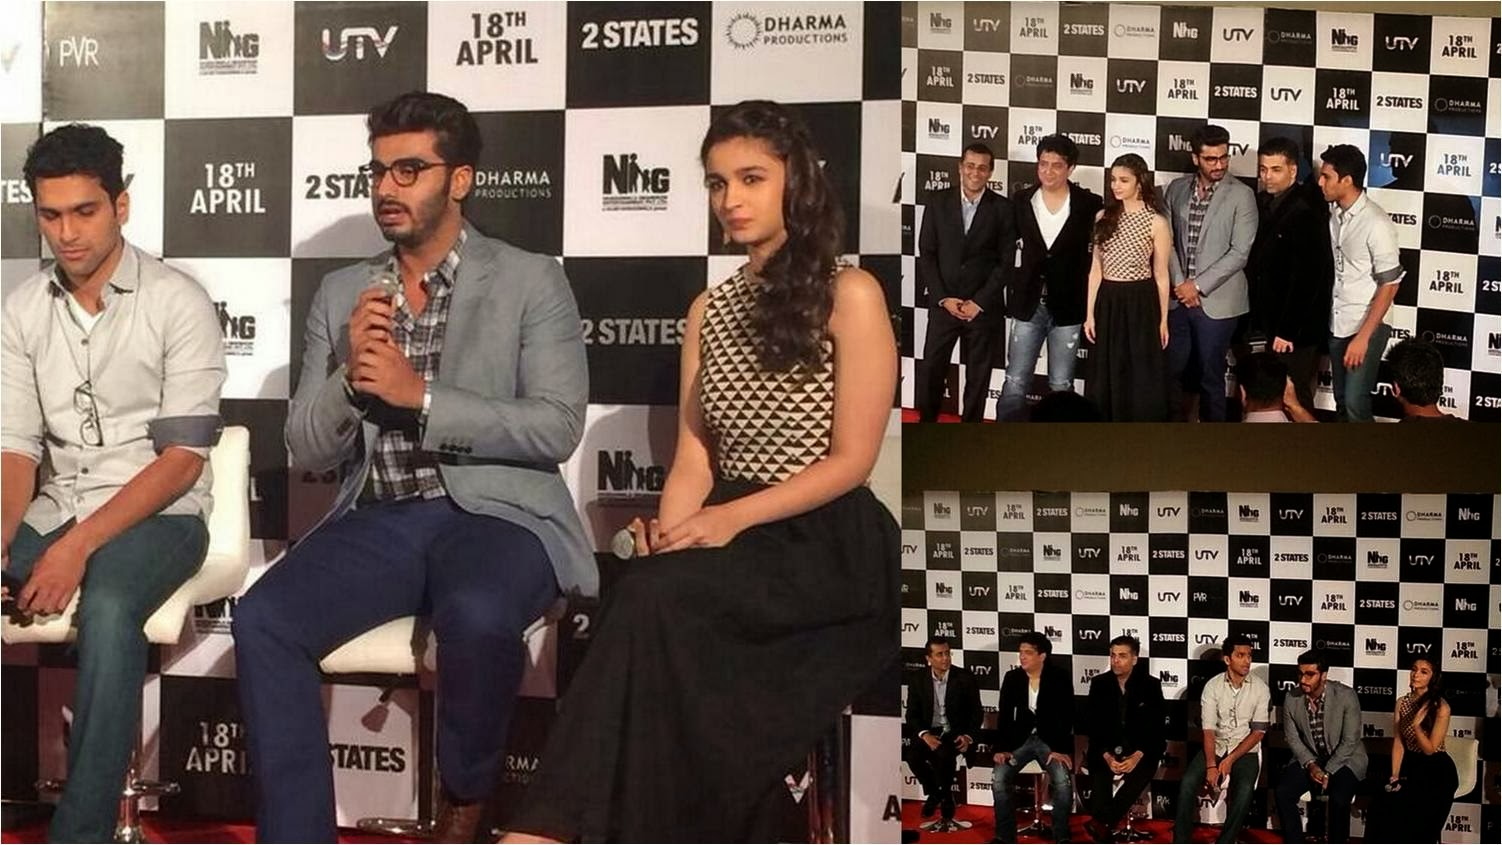 Arjun Kapoor, Alia Bhatt, Karan Johar, Sajid Nadiadwala and team of 2 States at official trailer launch event